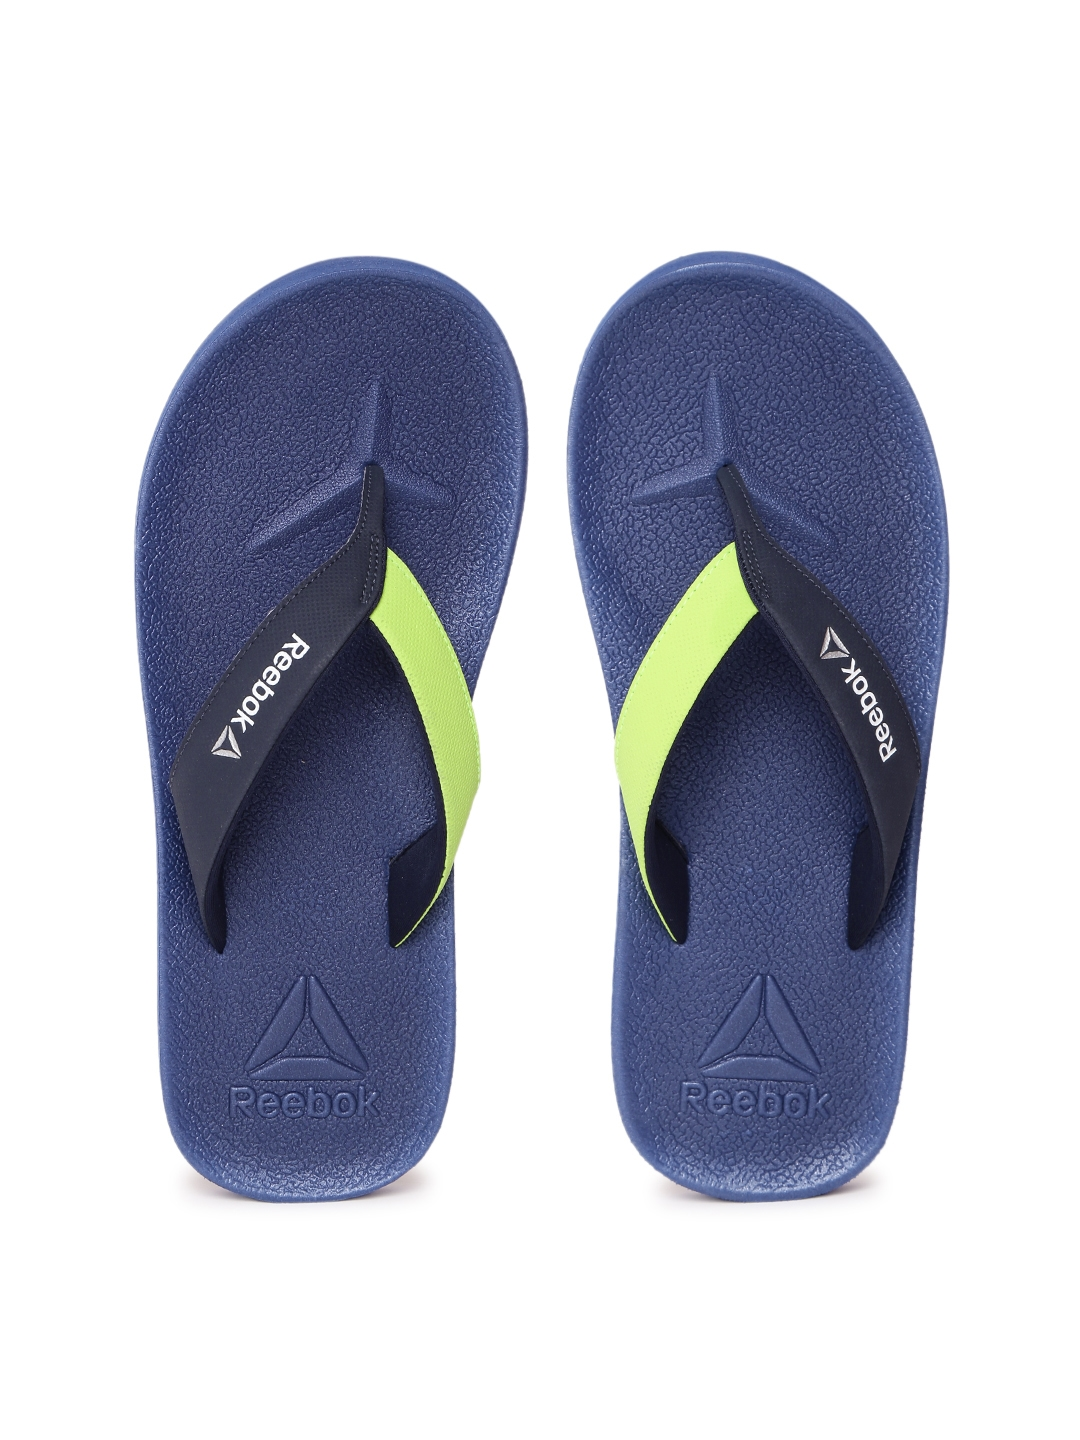 4b697cb95 Buy Reebok Men Navy   Green Adventure Colourblocked Flip Flops ...